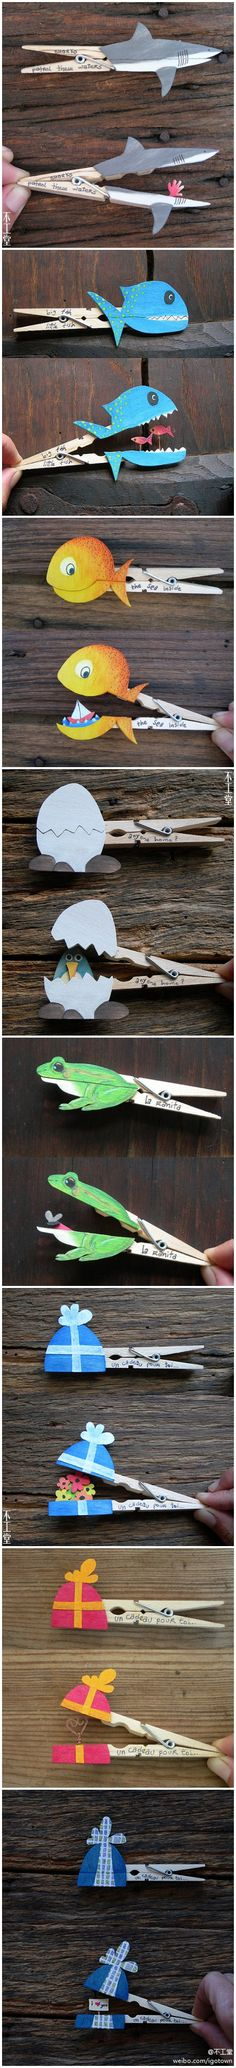 Clothespin Chompers - super cute idea!